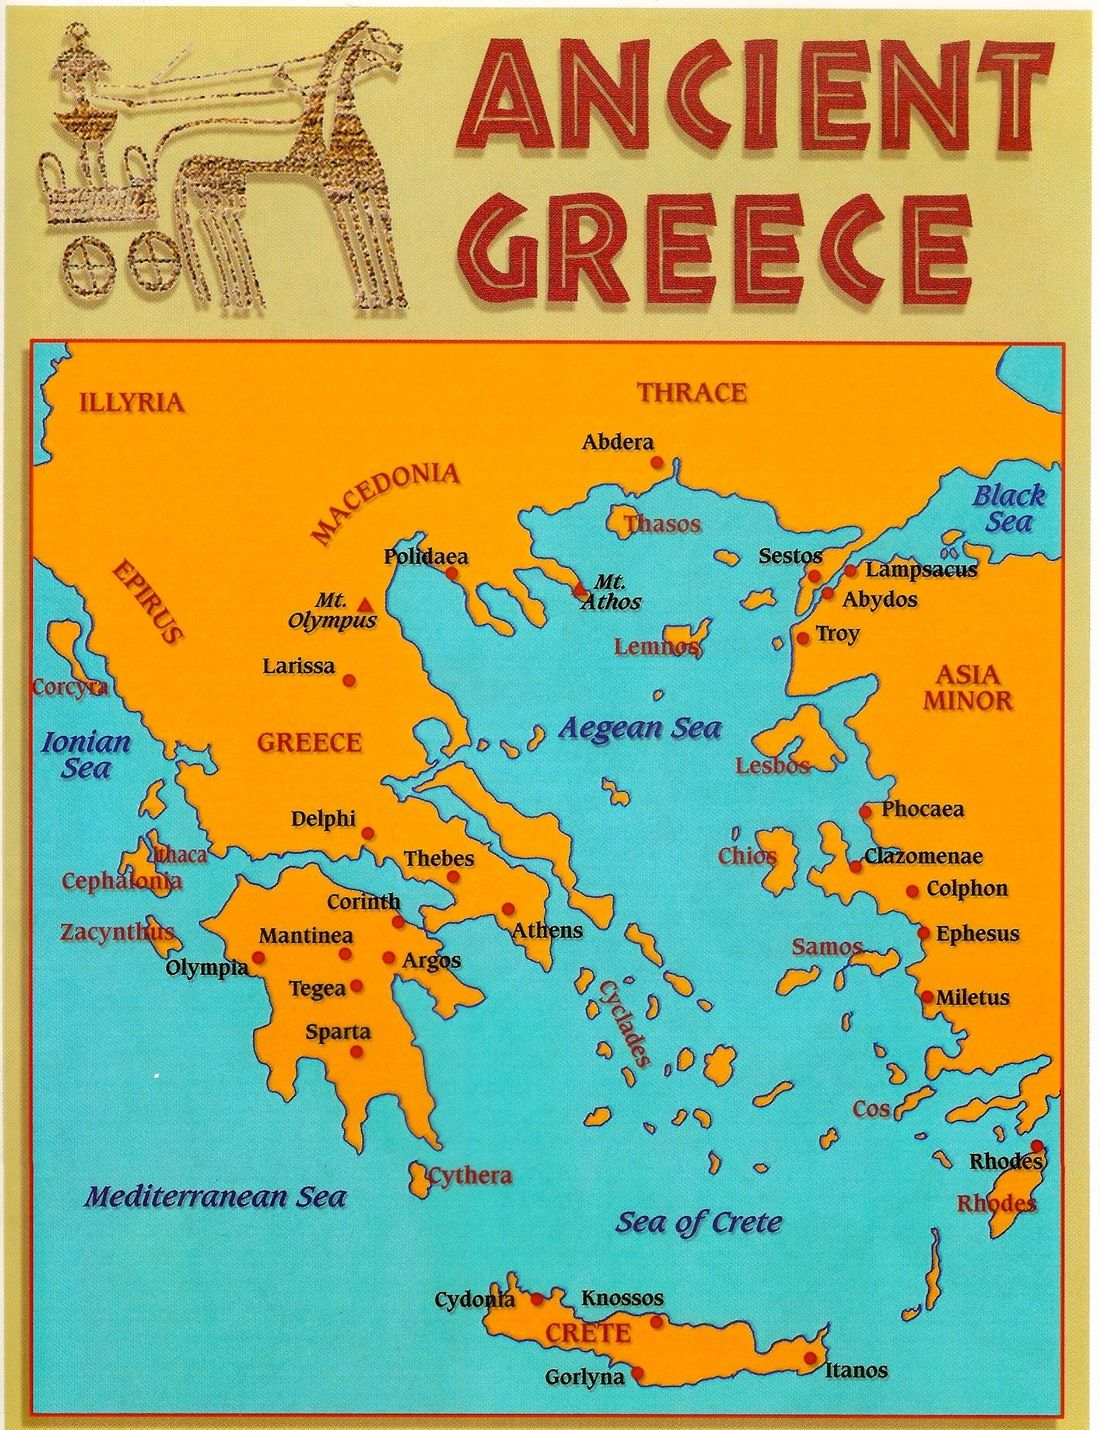 Greek Architecture And The United States